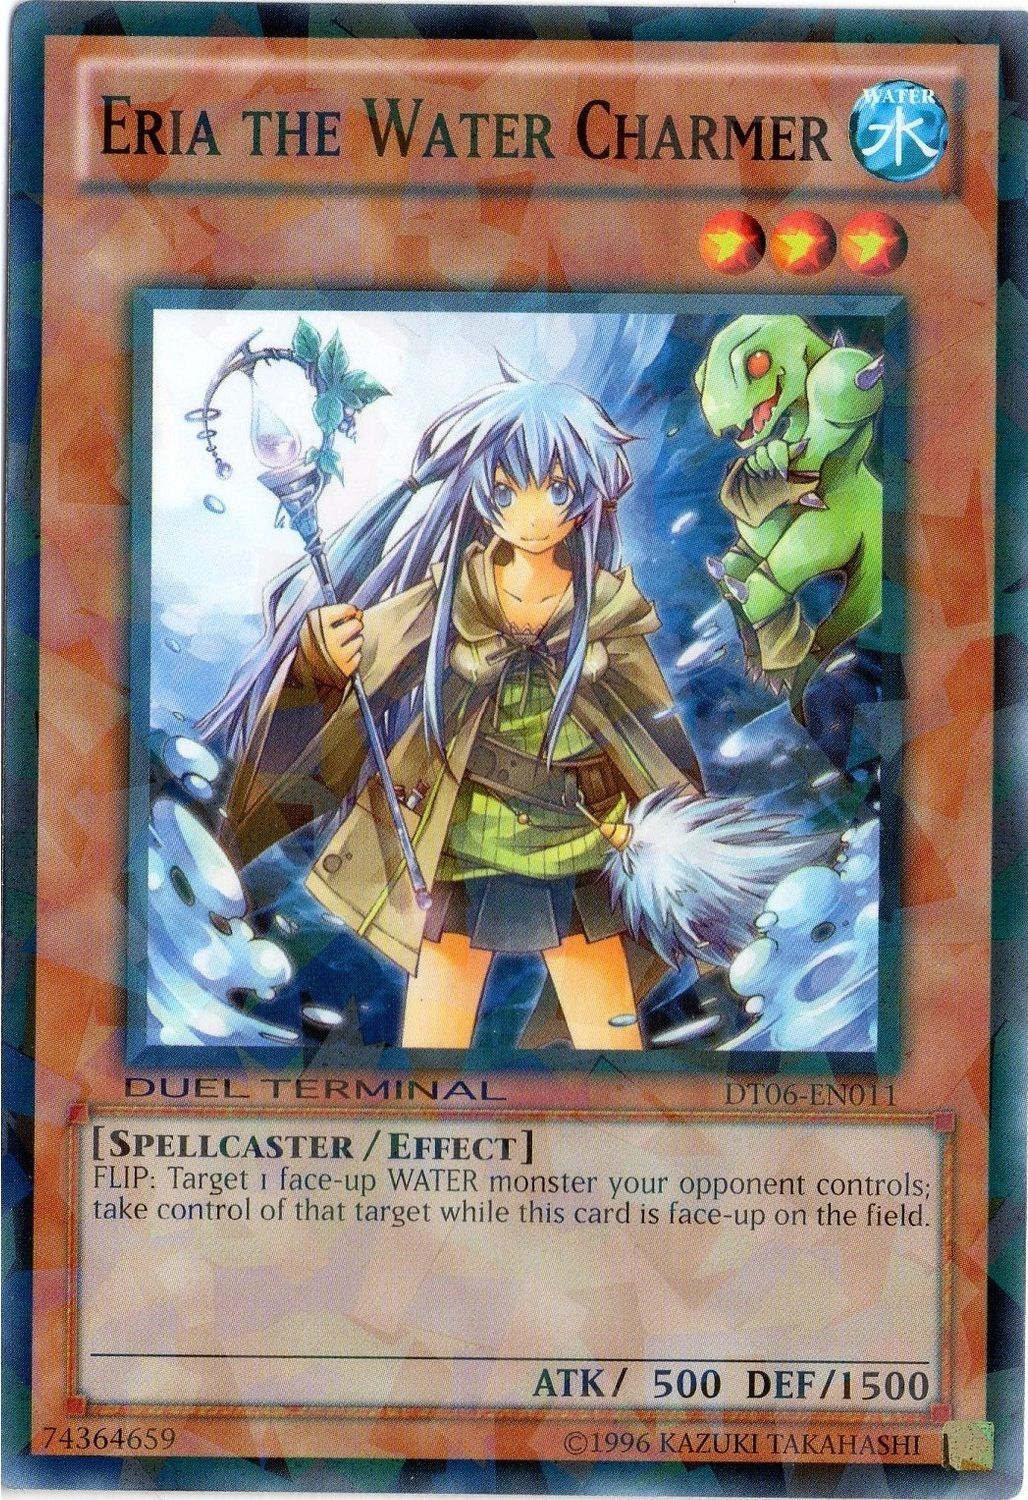 pin by alena marenfeld on yu gi oh cards part 10 pinterest